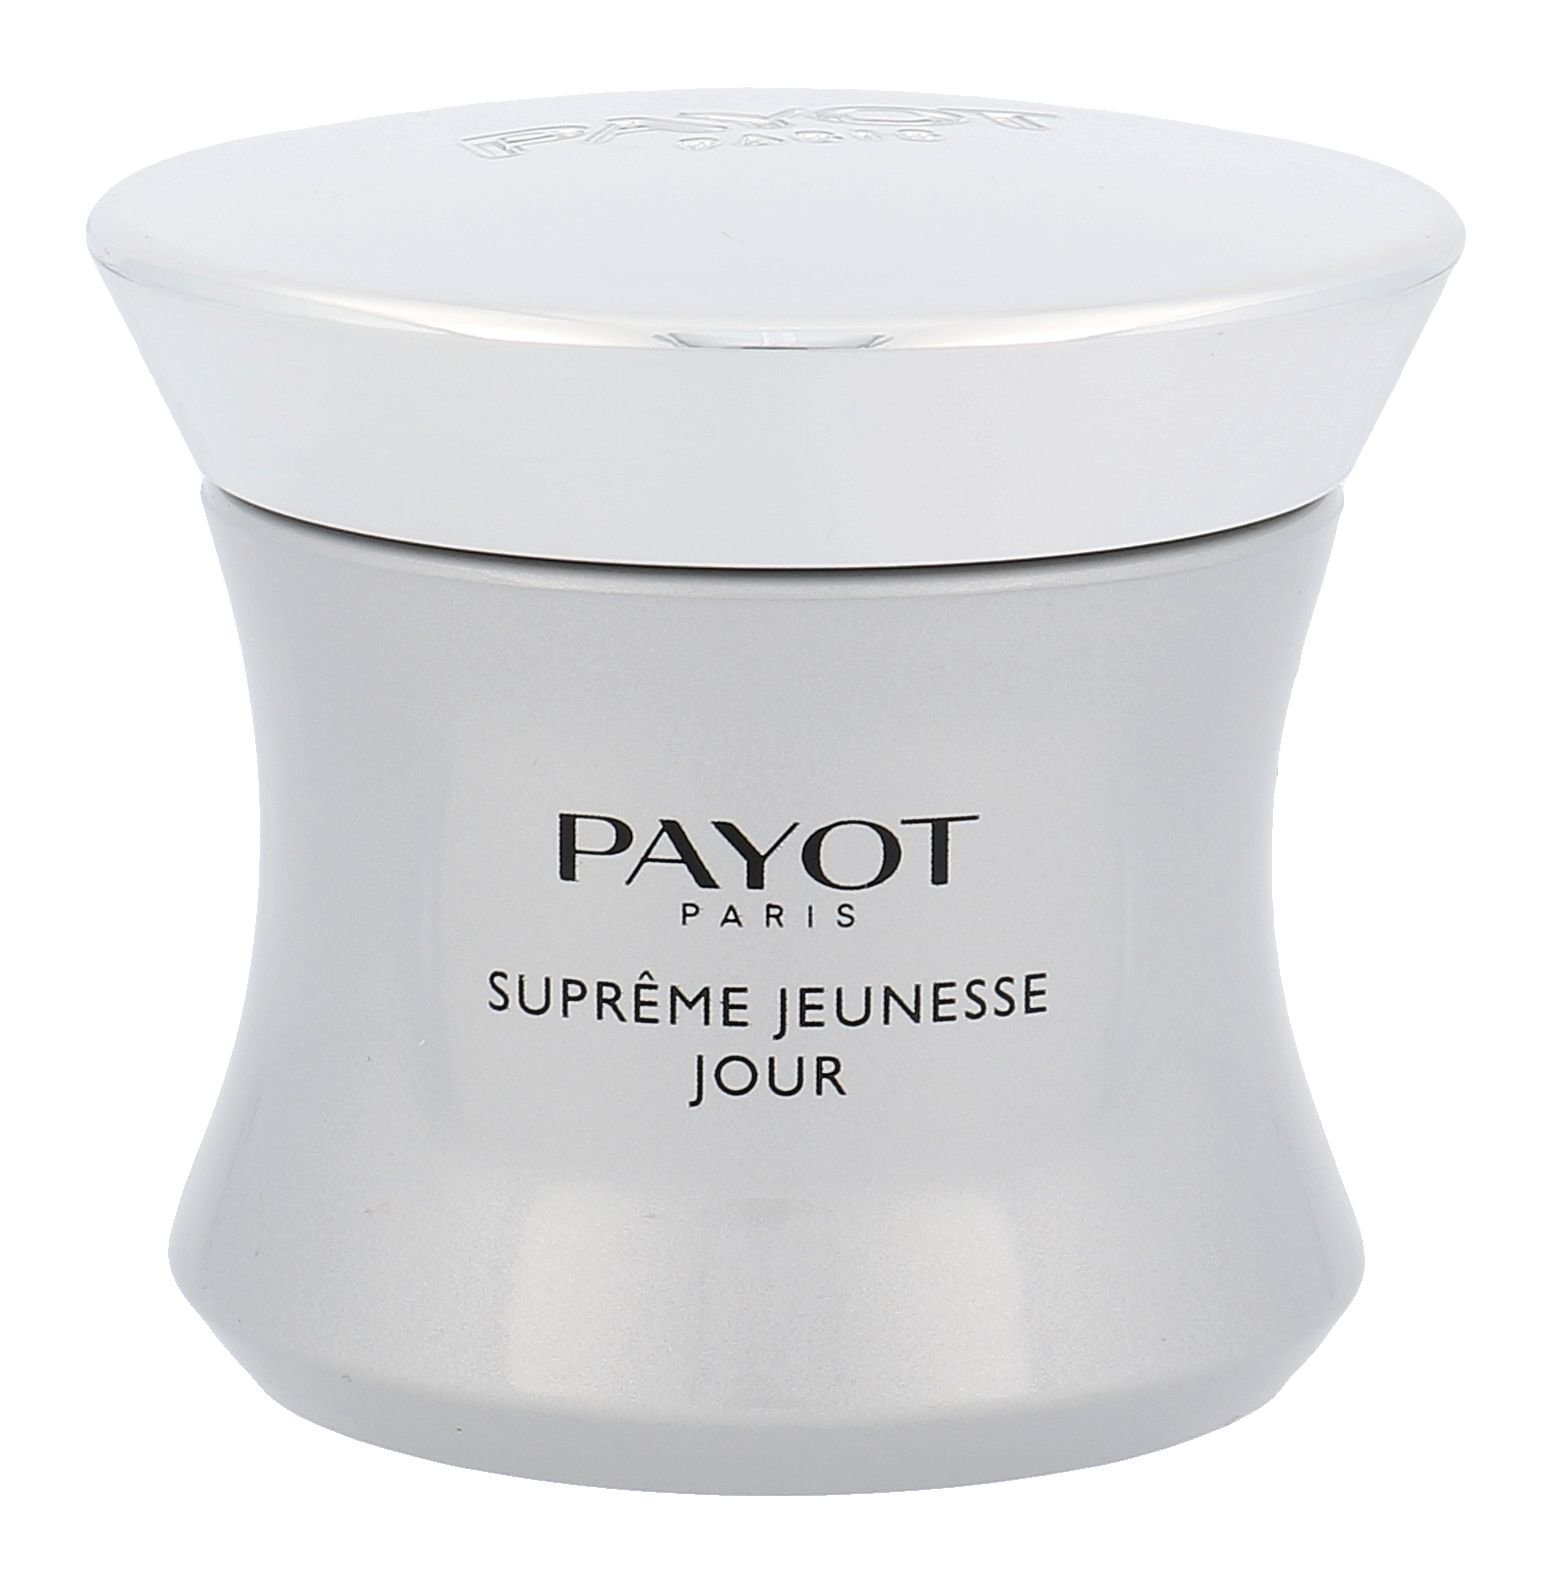 PAYOT Supreme Jeunesse Day Cream 50ml